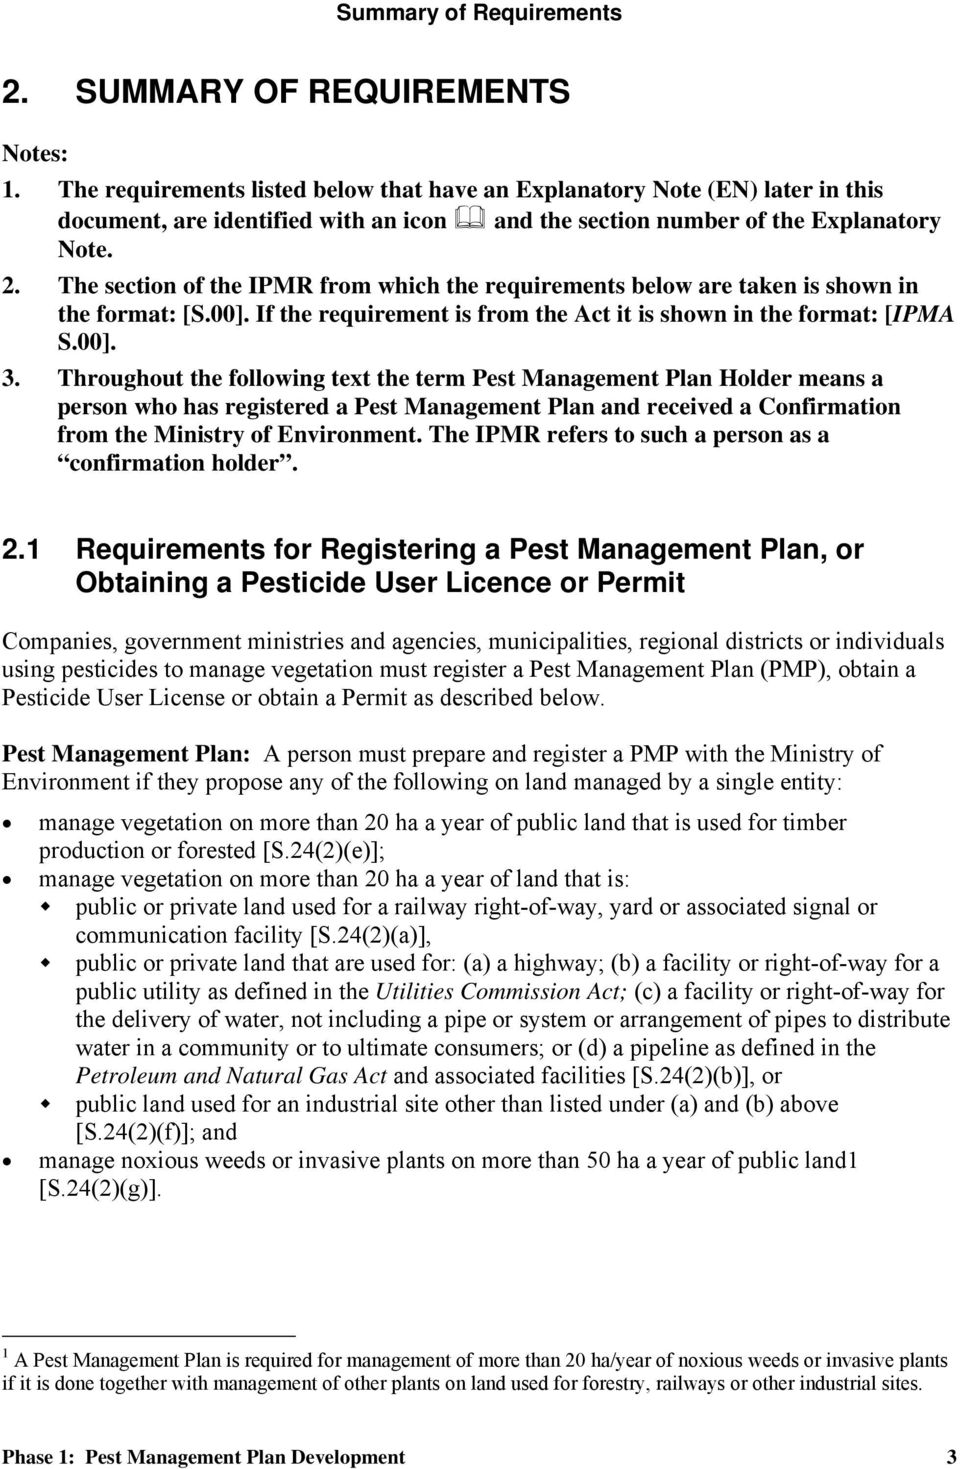 The section of the IPMR from which the requirements below are taken is shown in the format: [S.00]. If the requirement is from the Act it is shown in the format: [IPMA S.00]. 3.